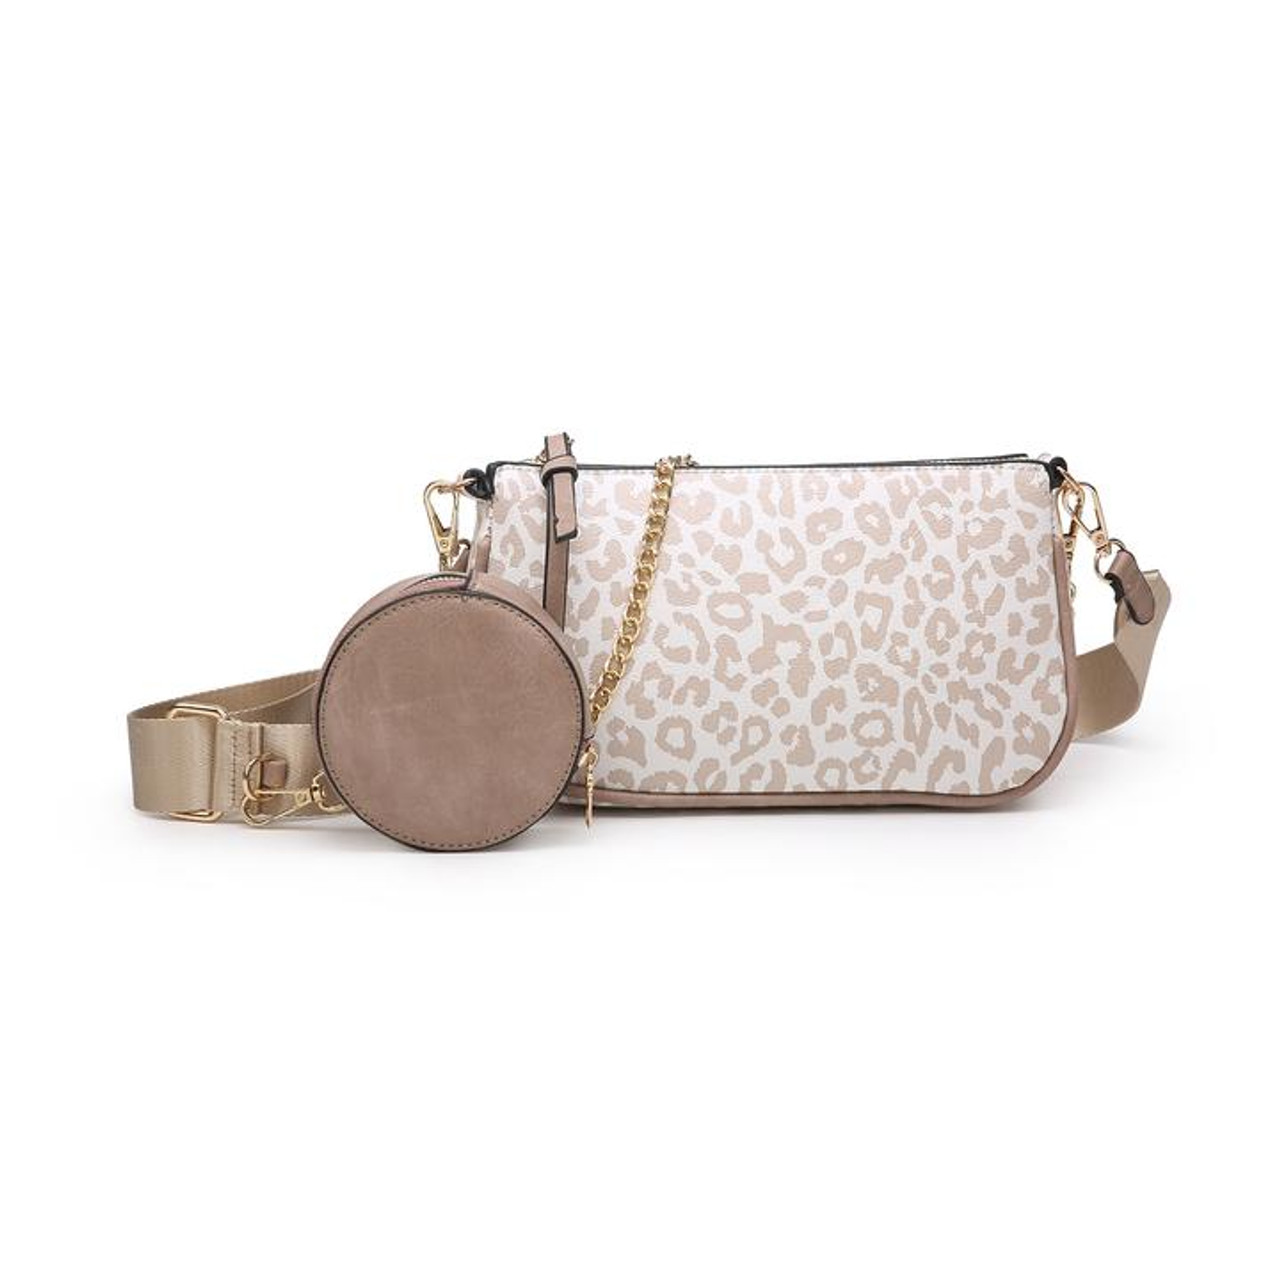 Marina is a high-end, versatile piece. Wear it with the chain or with the adjustable nylon strap--both are removable! The nylon strap includes a circular coin pouch that can also be removed. Features gold tone hardware and an inside zipper pocket.